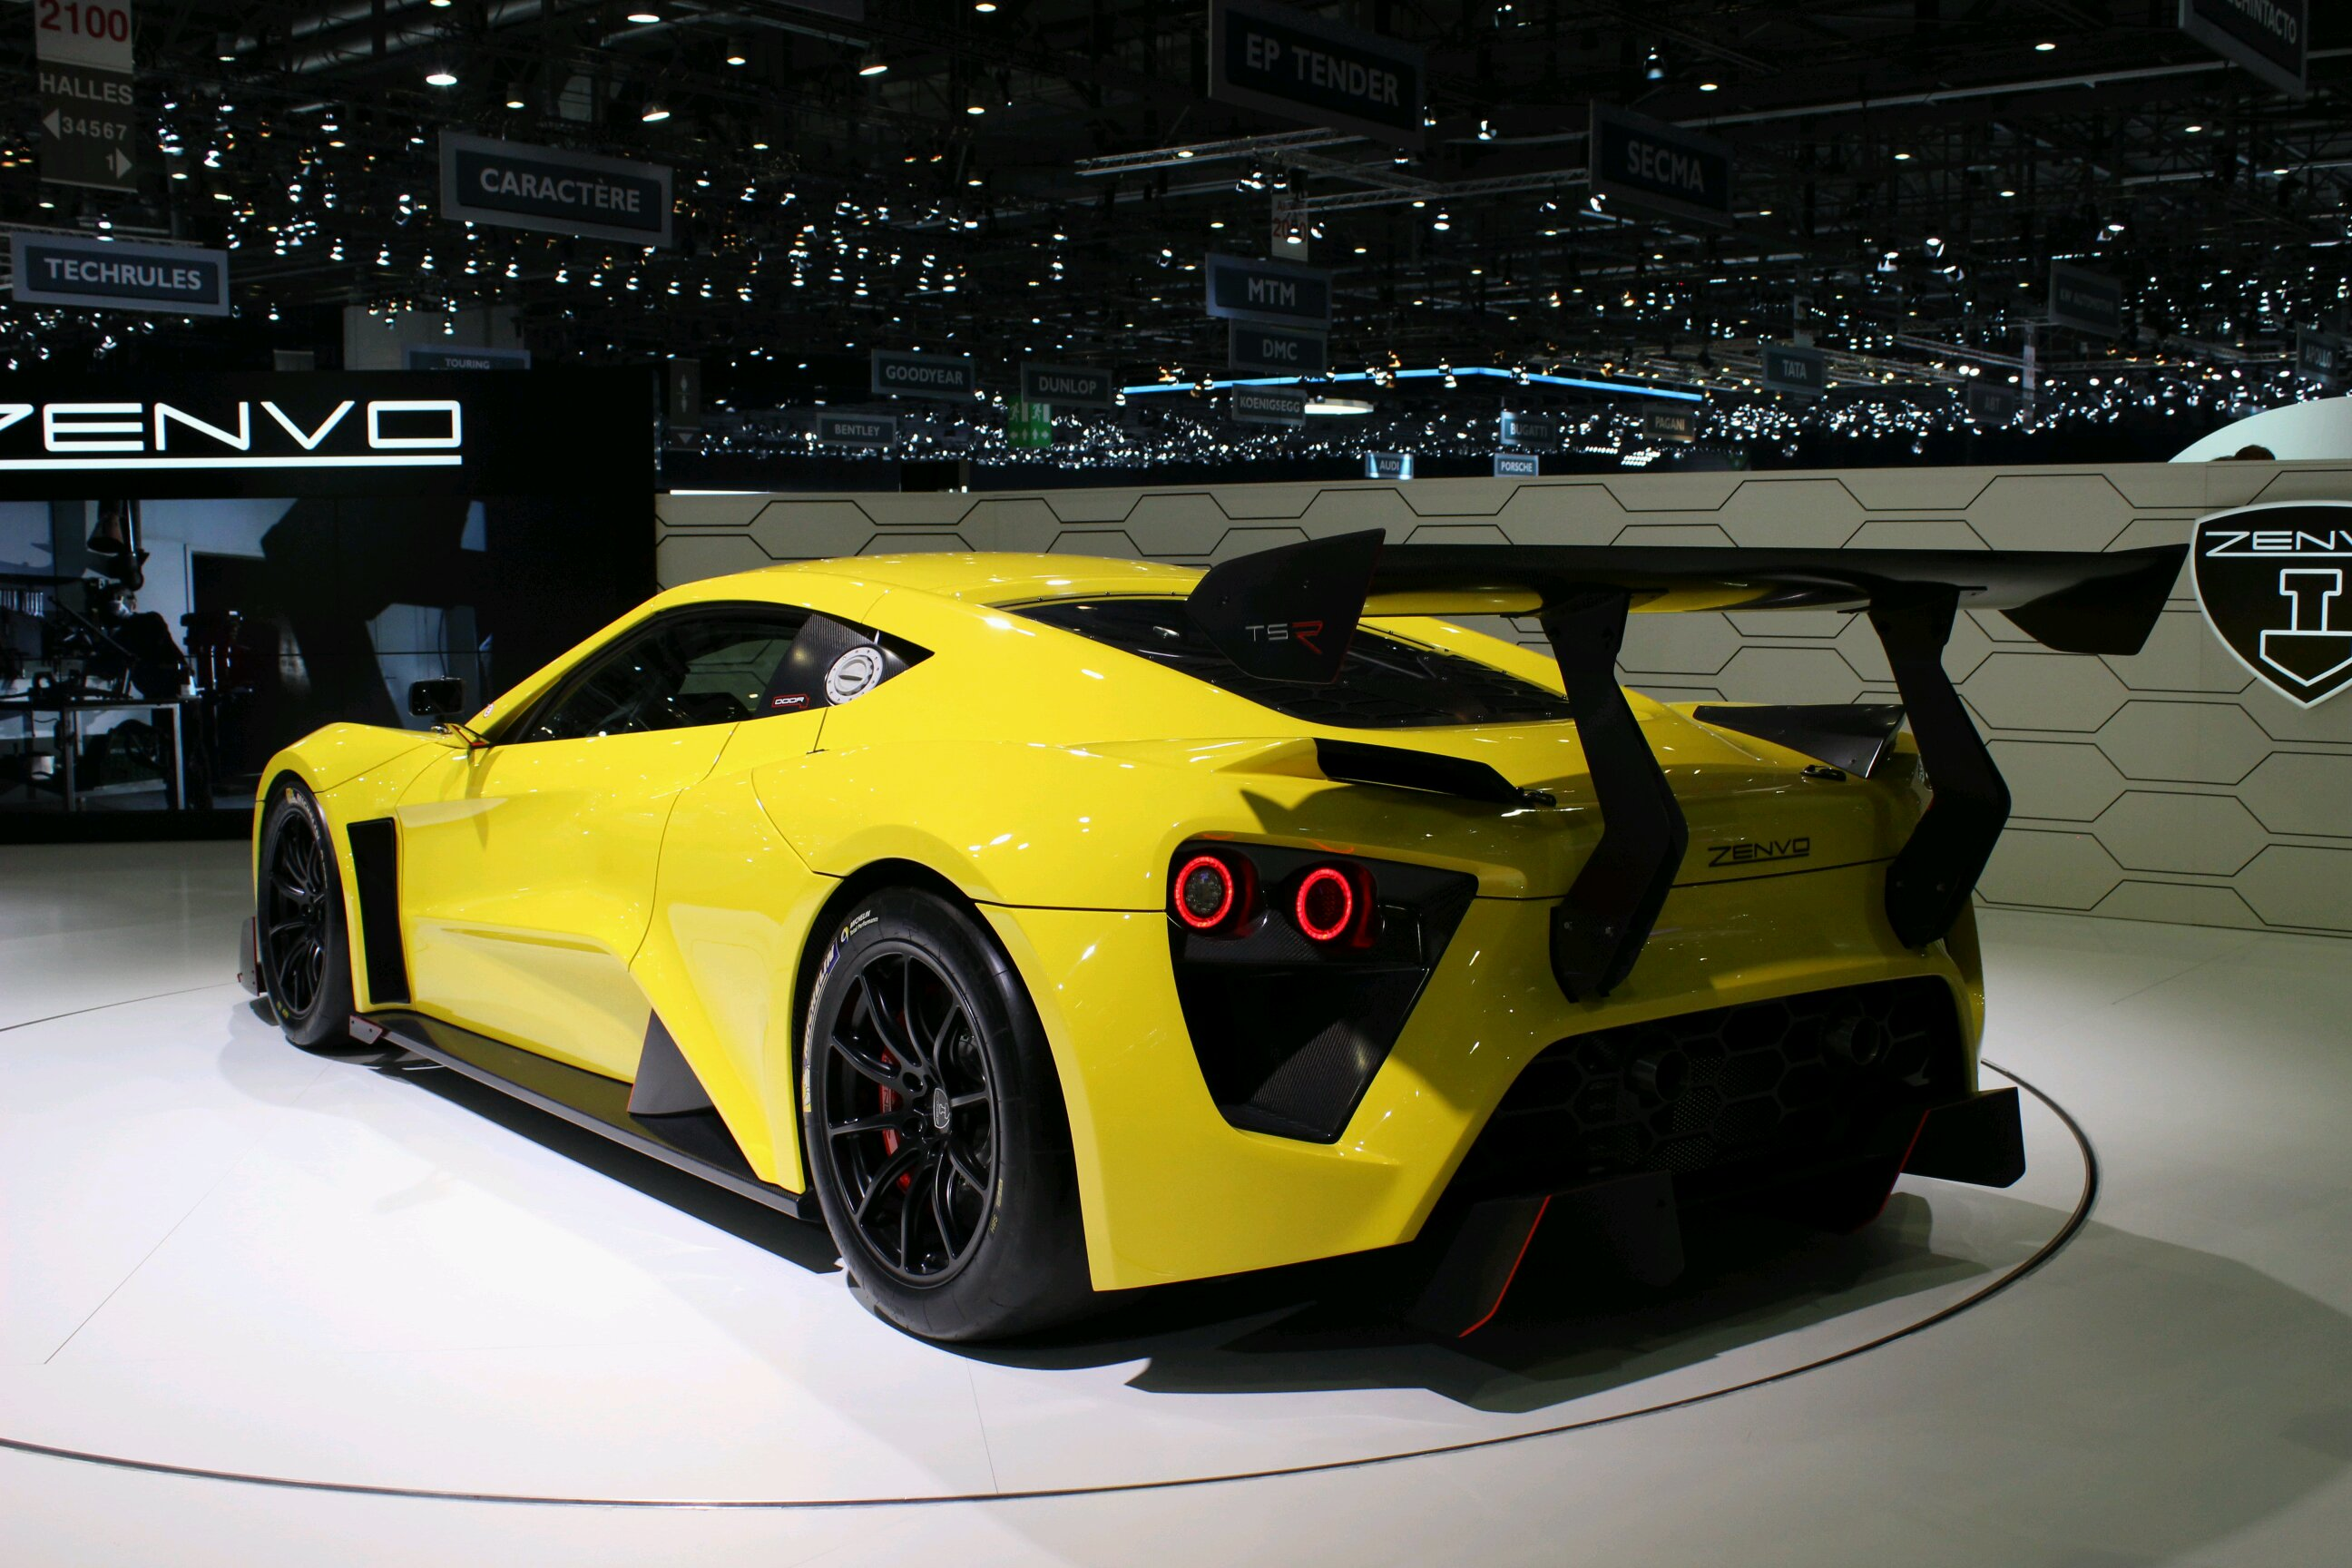 Rear View On The Zenvo And Its Exaggerated Spoiler And Aero